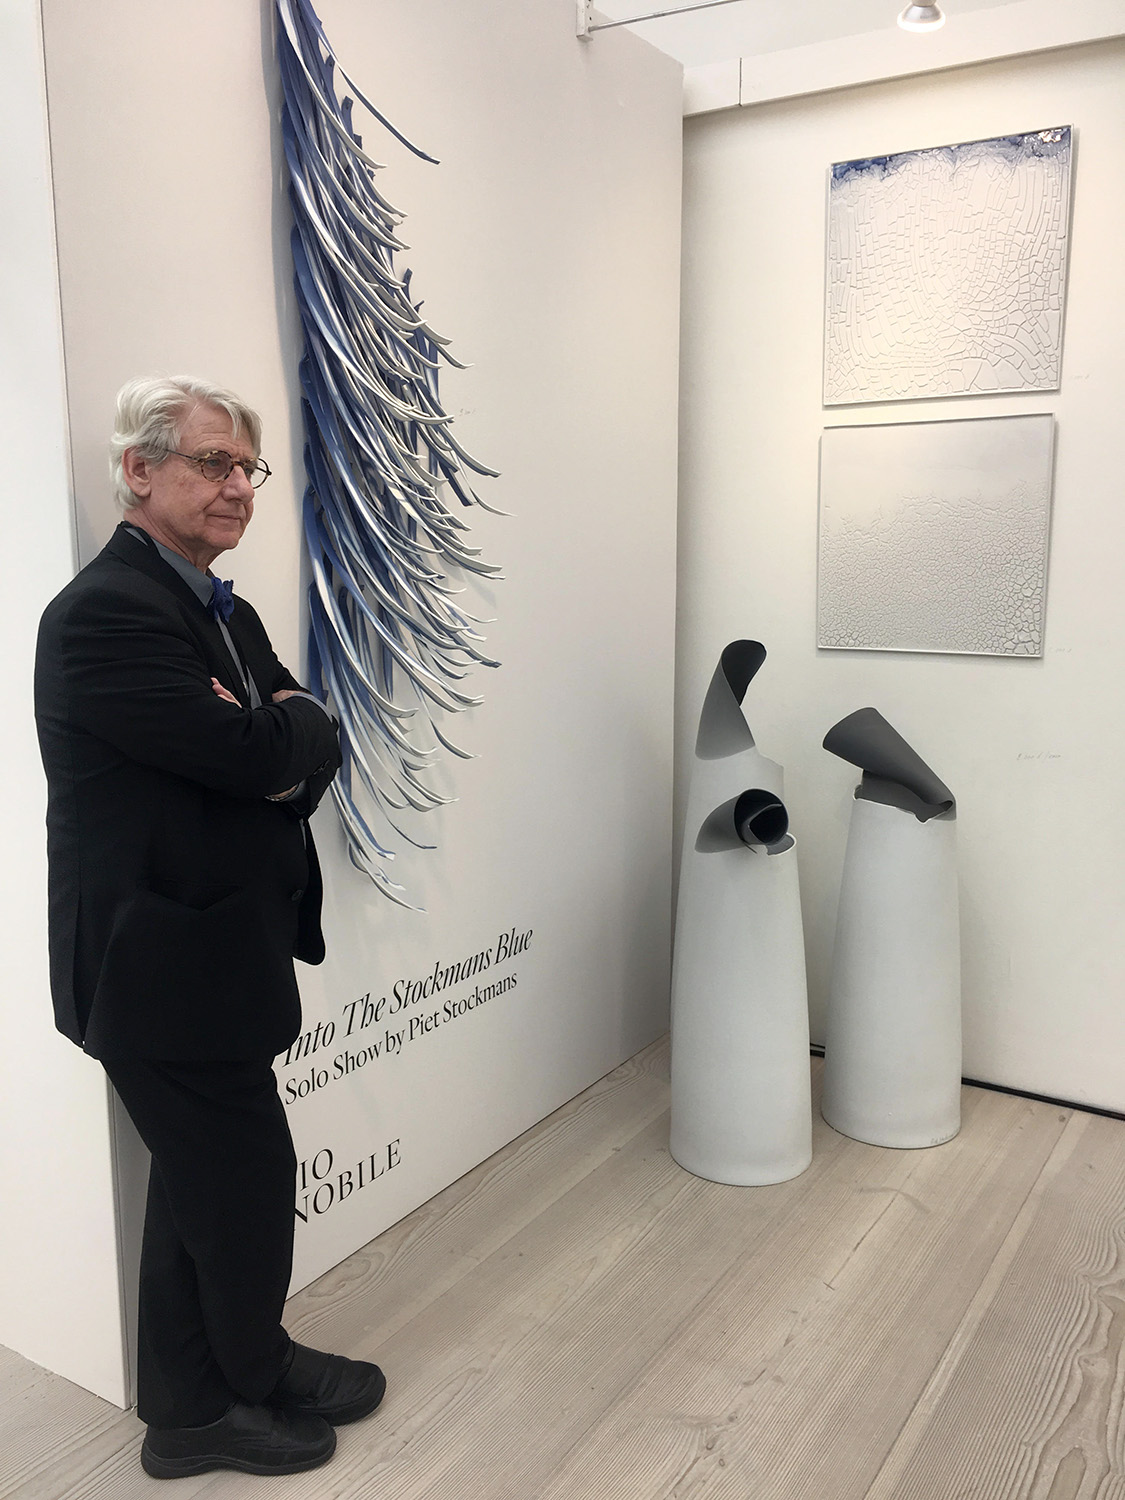 Into Stockmans Blue Collect, solo show, Saatchi Gallery, London, UK, February 2018 4_LR.jpg